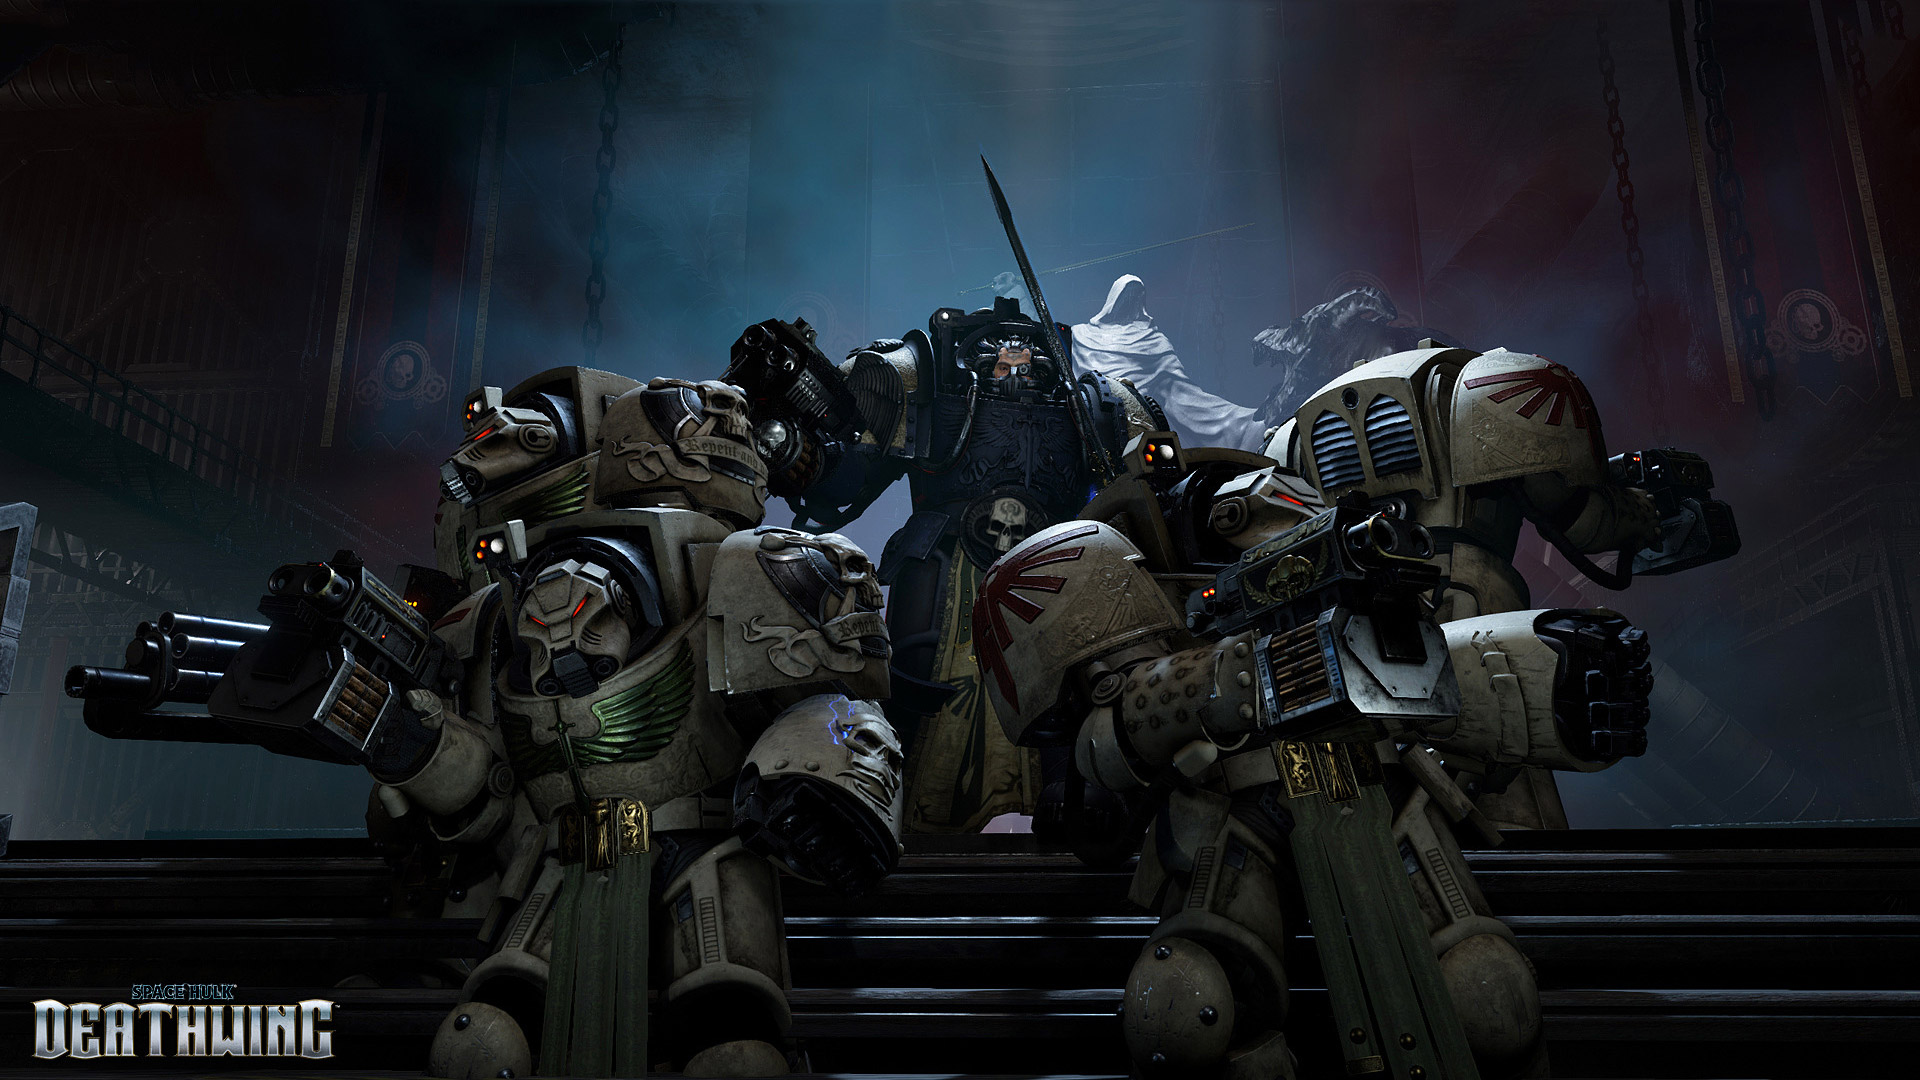 Free Space Hulk: Deathwing Wallpaper in 1920x1080